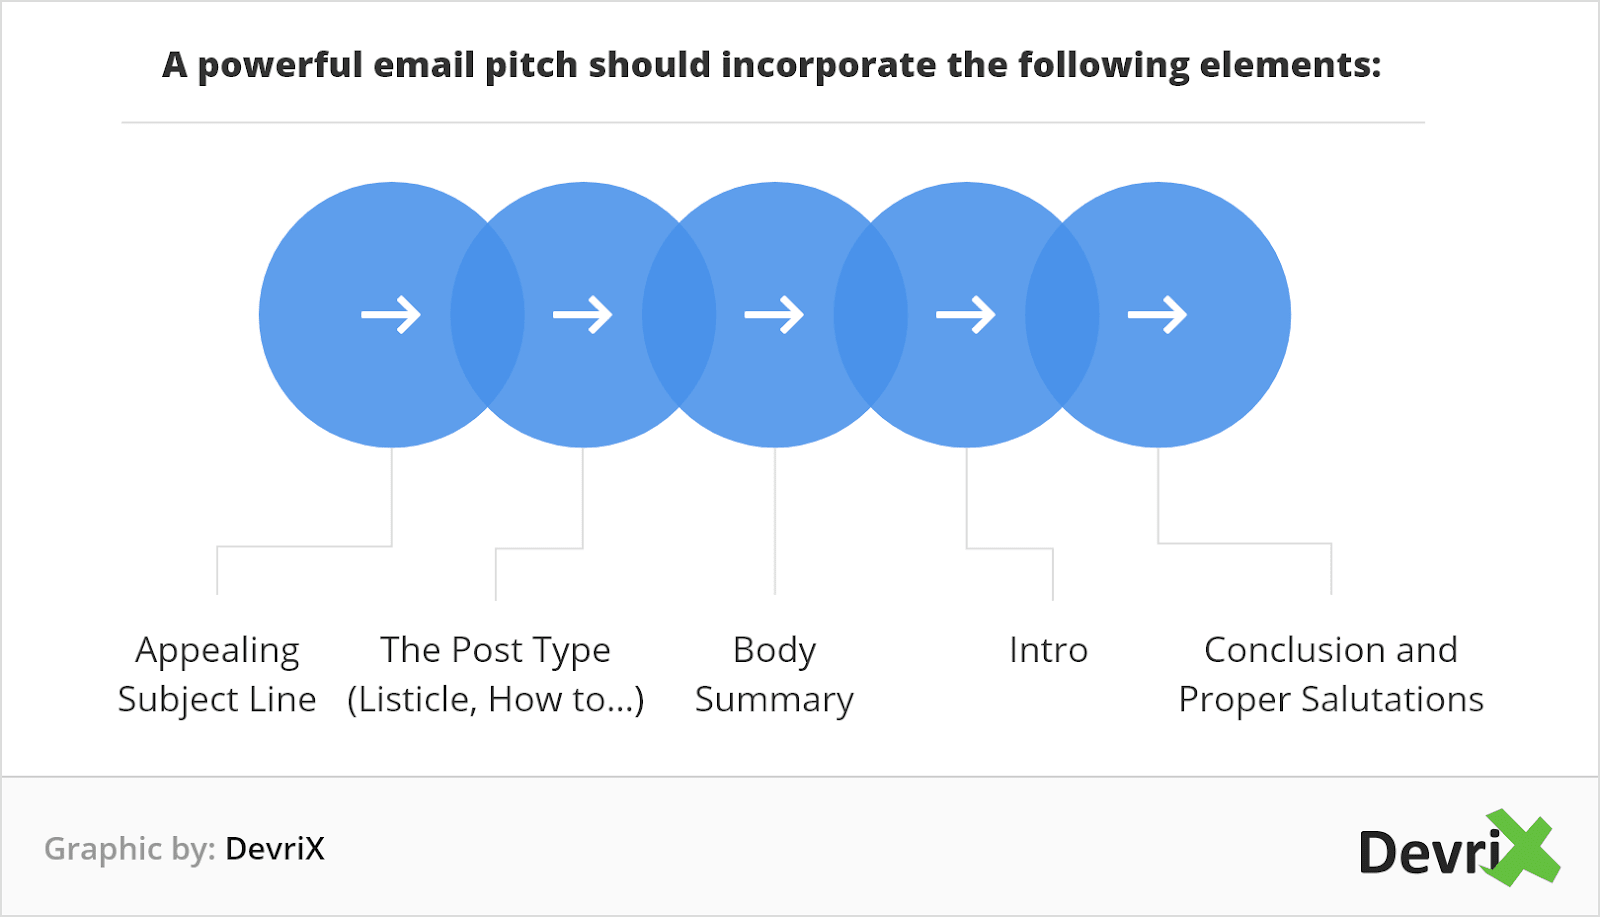 elements of a powerful email pitch